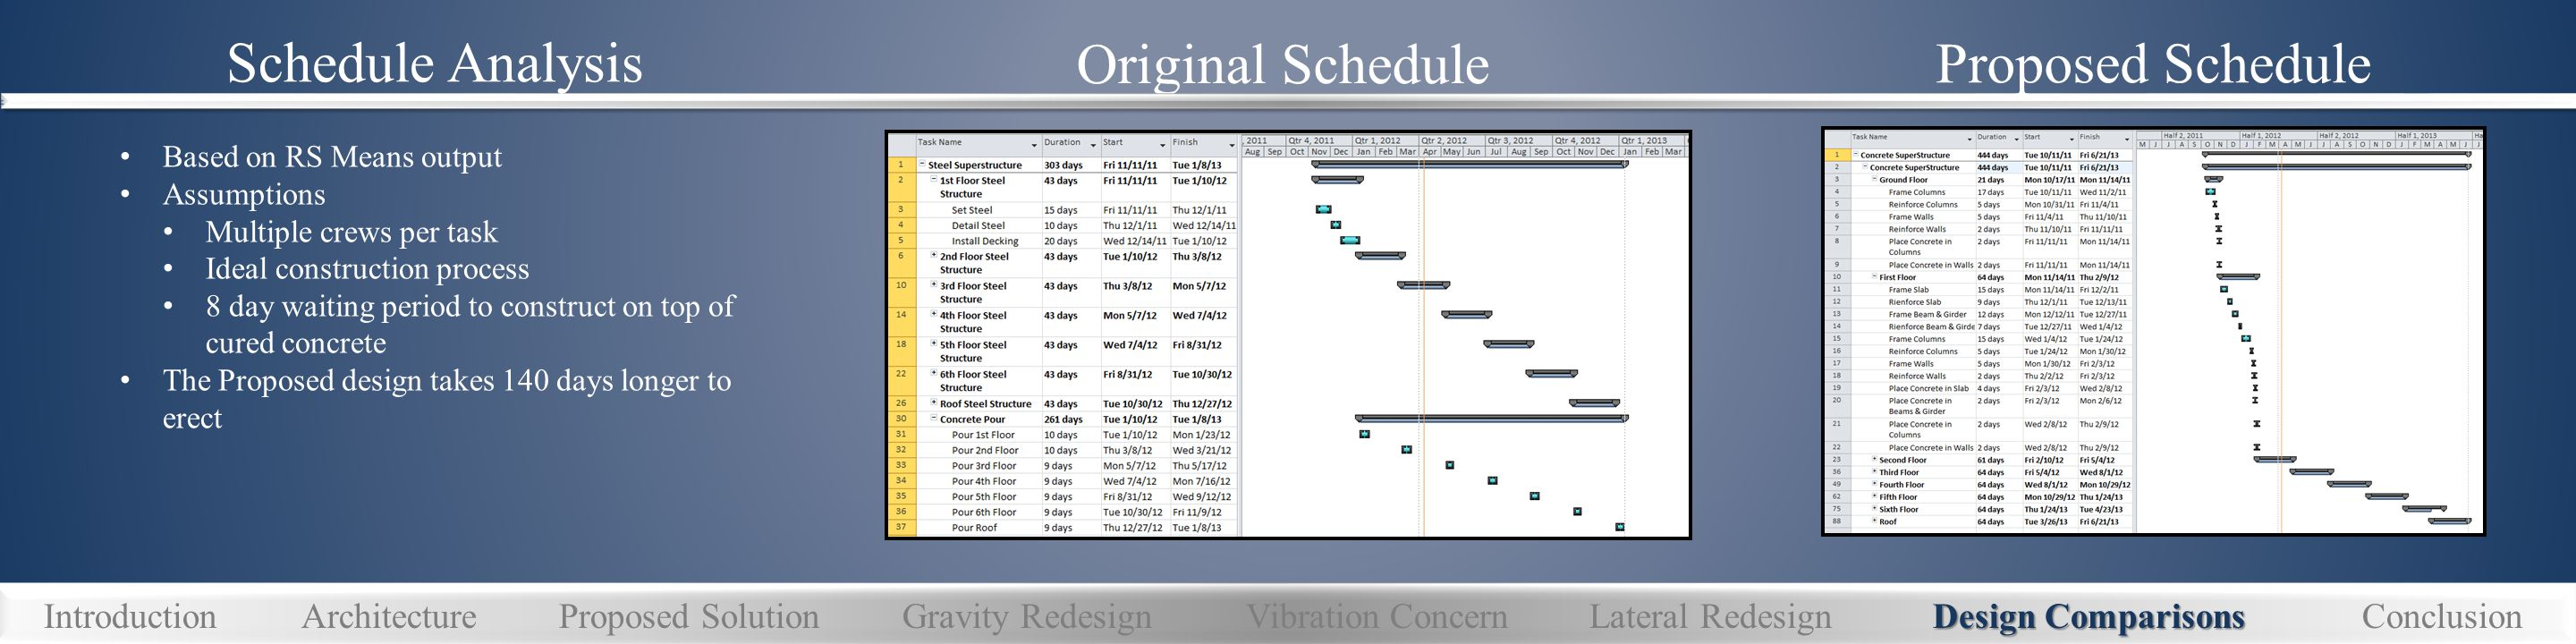 Original Schedule Schedule Analysis Proposed Schedule Based on RS Means output Assumptions Multiple crews per task Ideal construction process 8 day waiting period to construct on top of cured concrete The Proposed design takes 140 days longer to erect Design Comparisons IntroductionArchitectureProposed SolutionGravity RedesignVibration ConcernLateral RedesignDesign ComparisonsConclusion